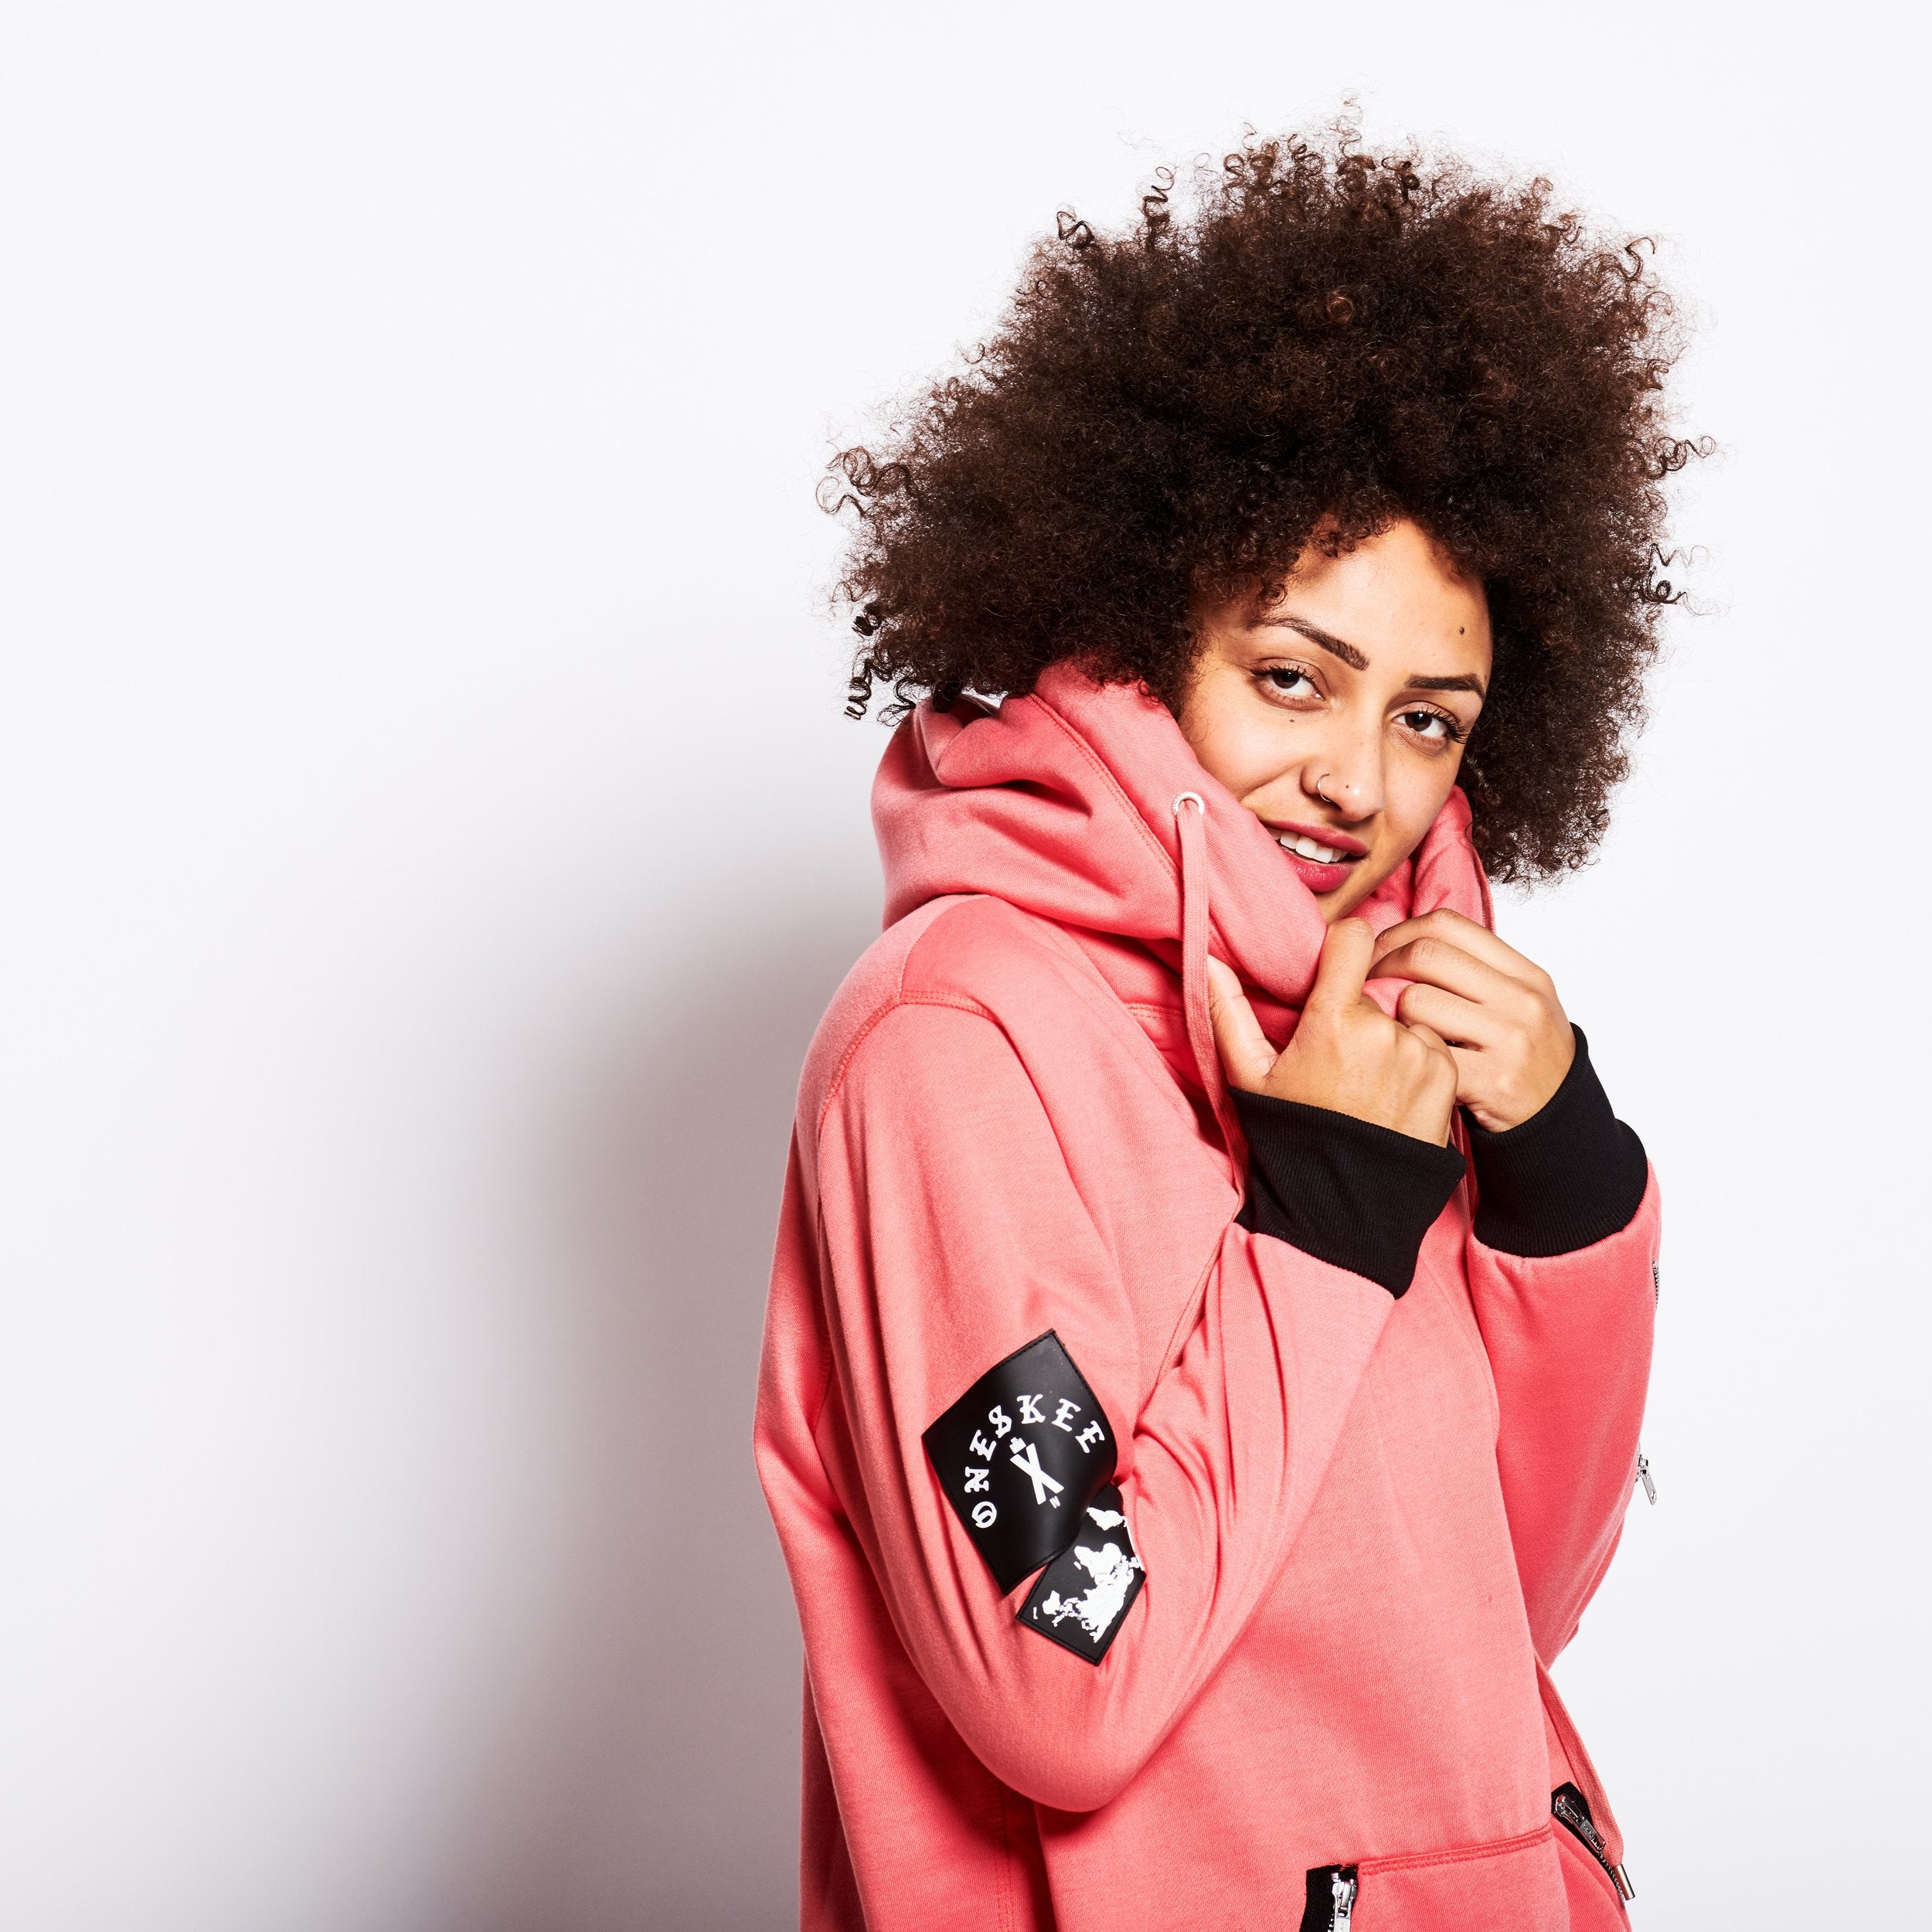 Women's Technical X-Neck Hoodie  - Pink image 3